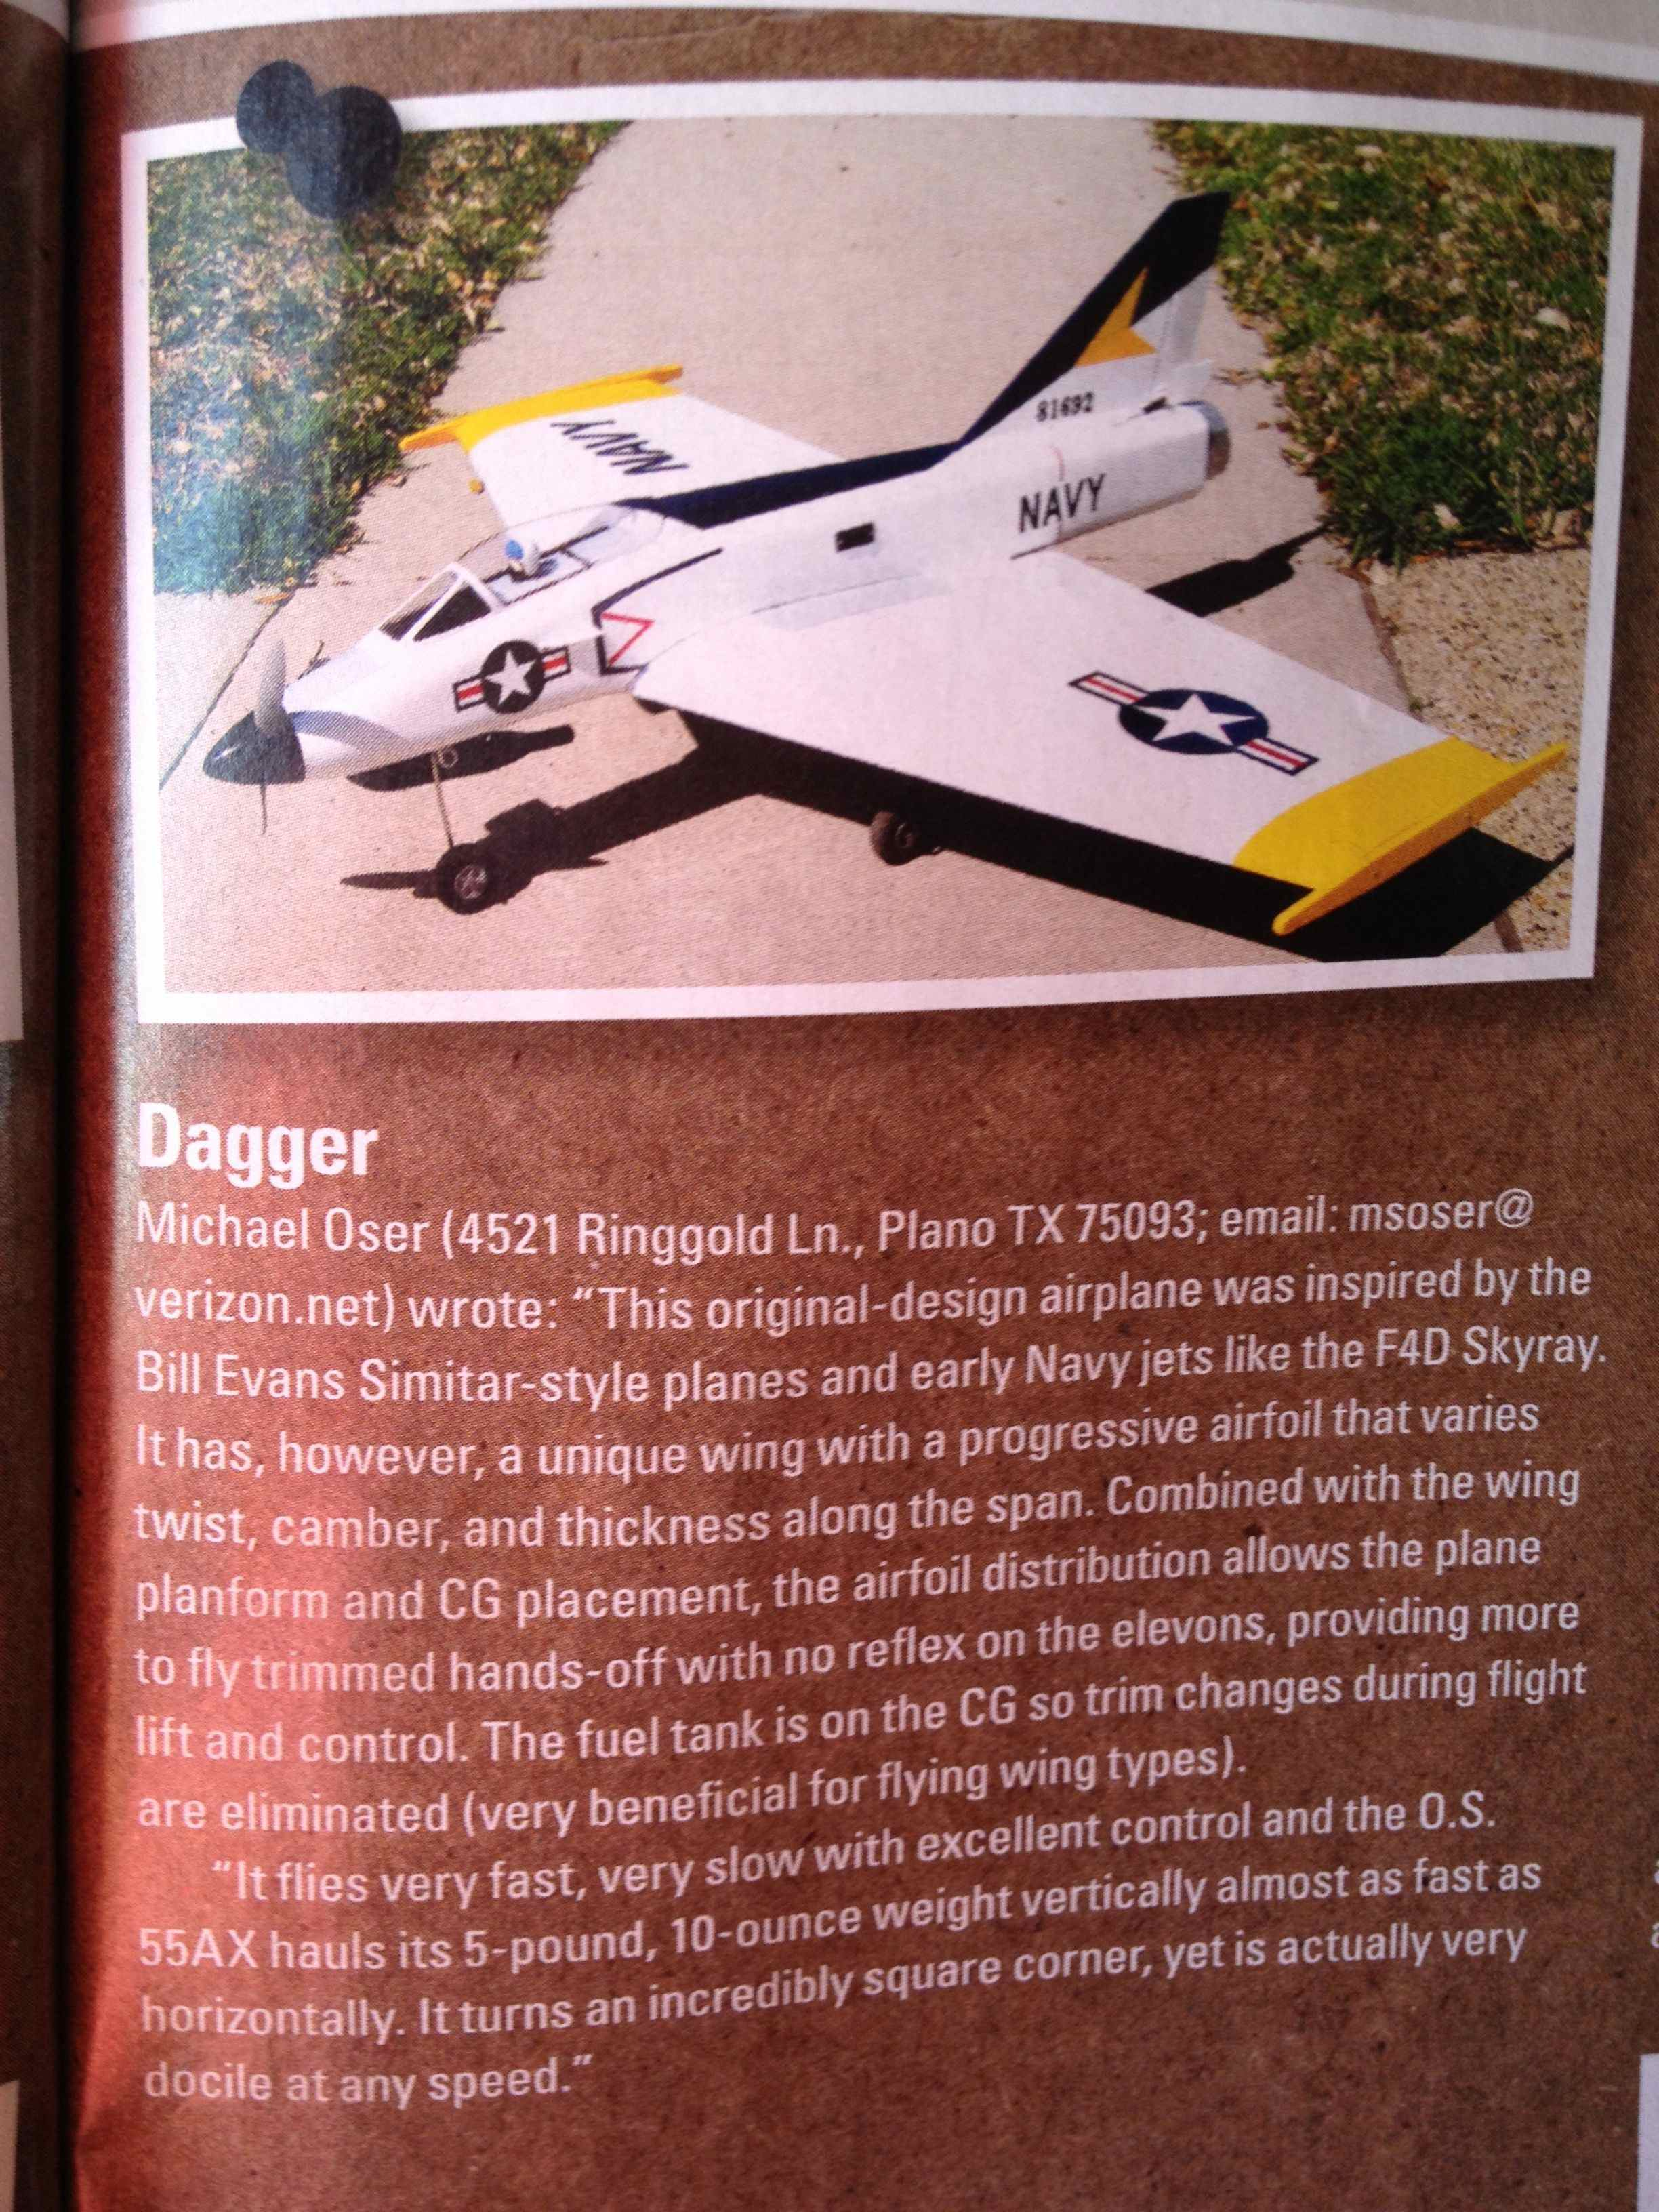 Click image for larger version  Name:Dagger APR 2012 MA 2.jpg Views:719 Size:612.7 KB ID:2064216